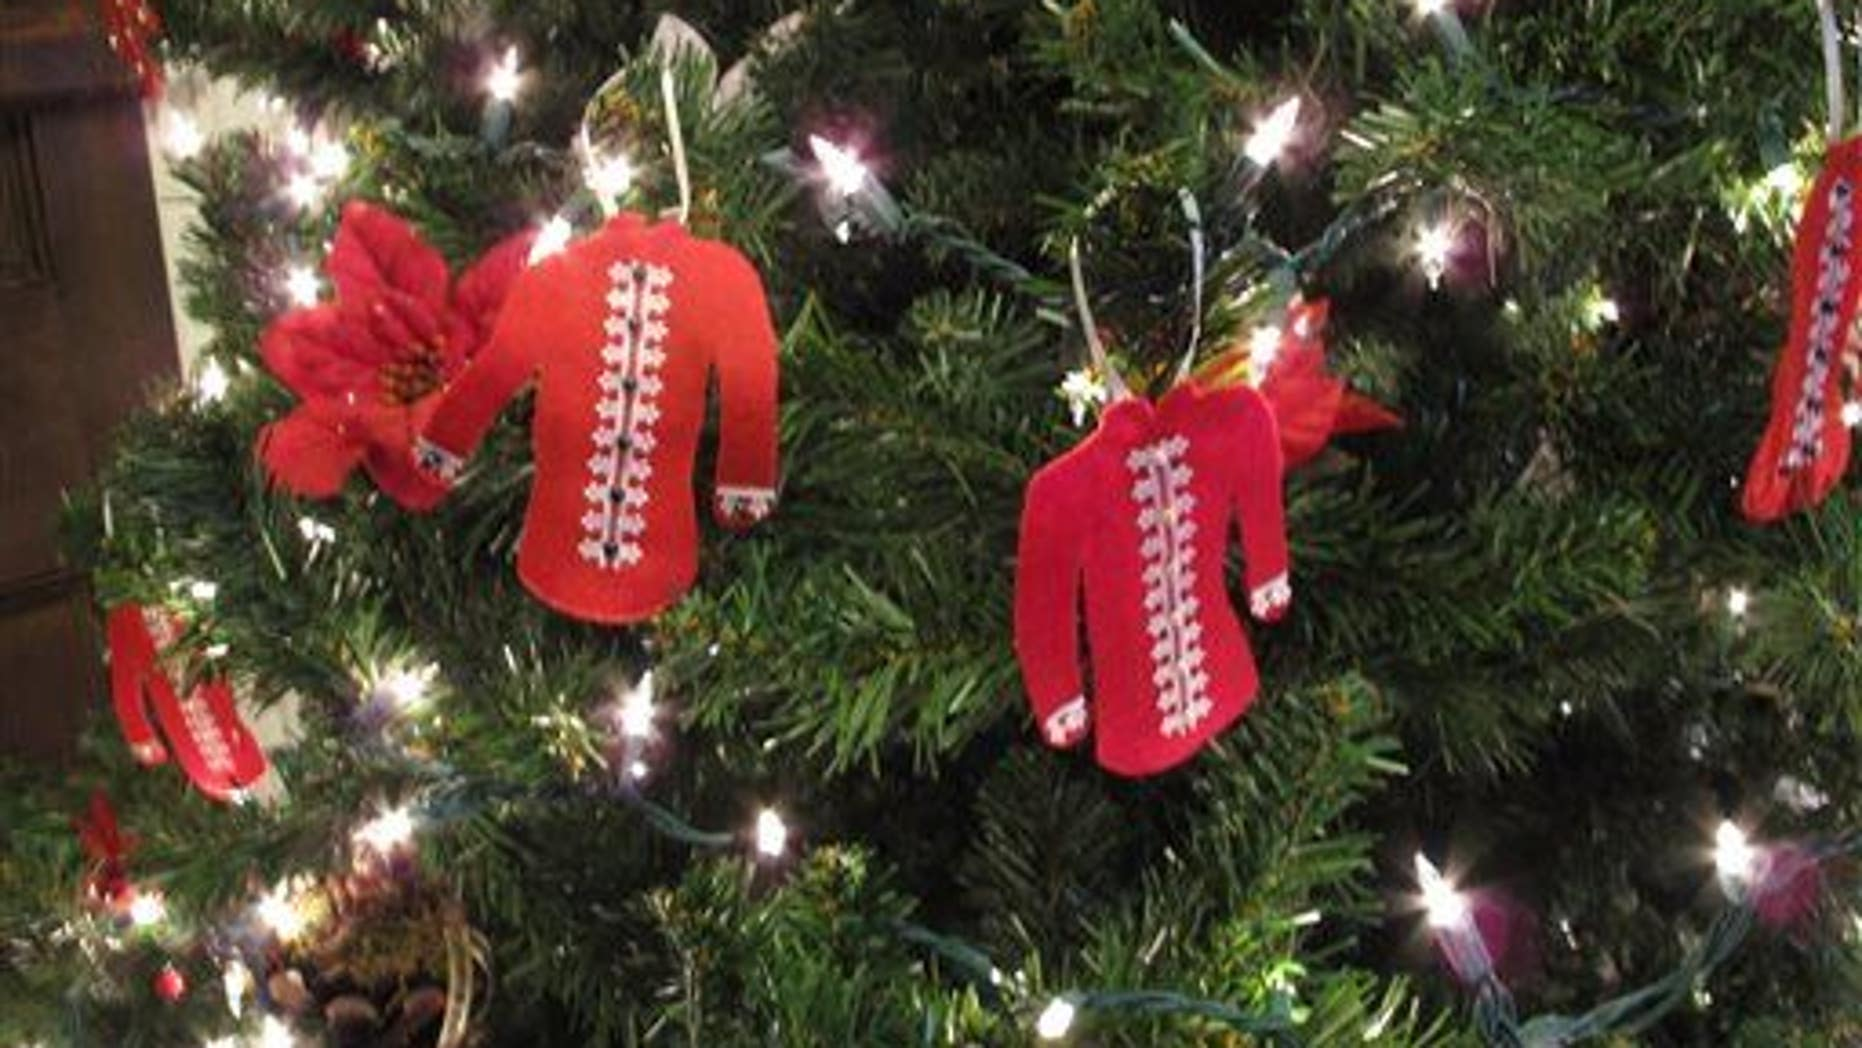 Several red shirt ornaments are on a Christmas tree at the mansion at Oakley Park on Friday, Dec. 5, 2014, in Edgefield, SC.